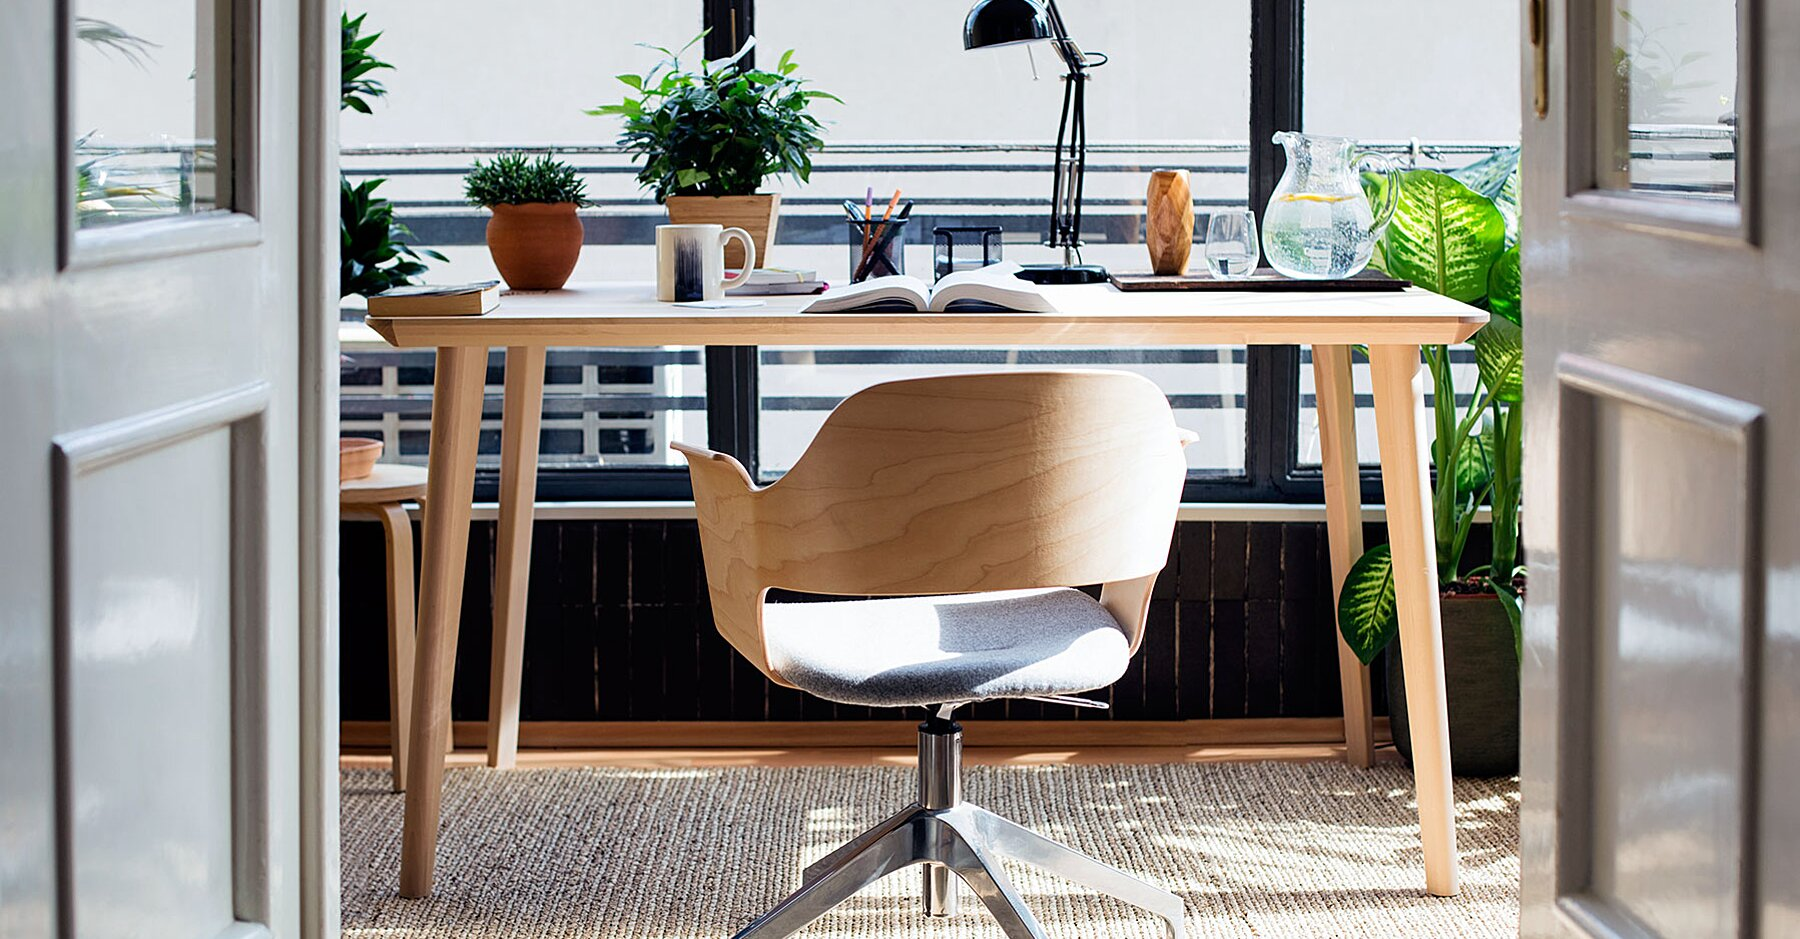 28 Home Office Ideas That Will Make You Want to Work All Day